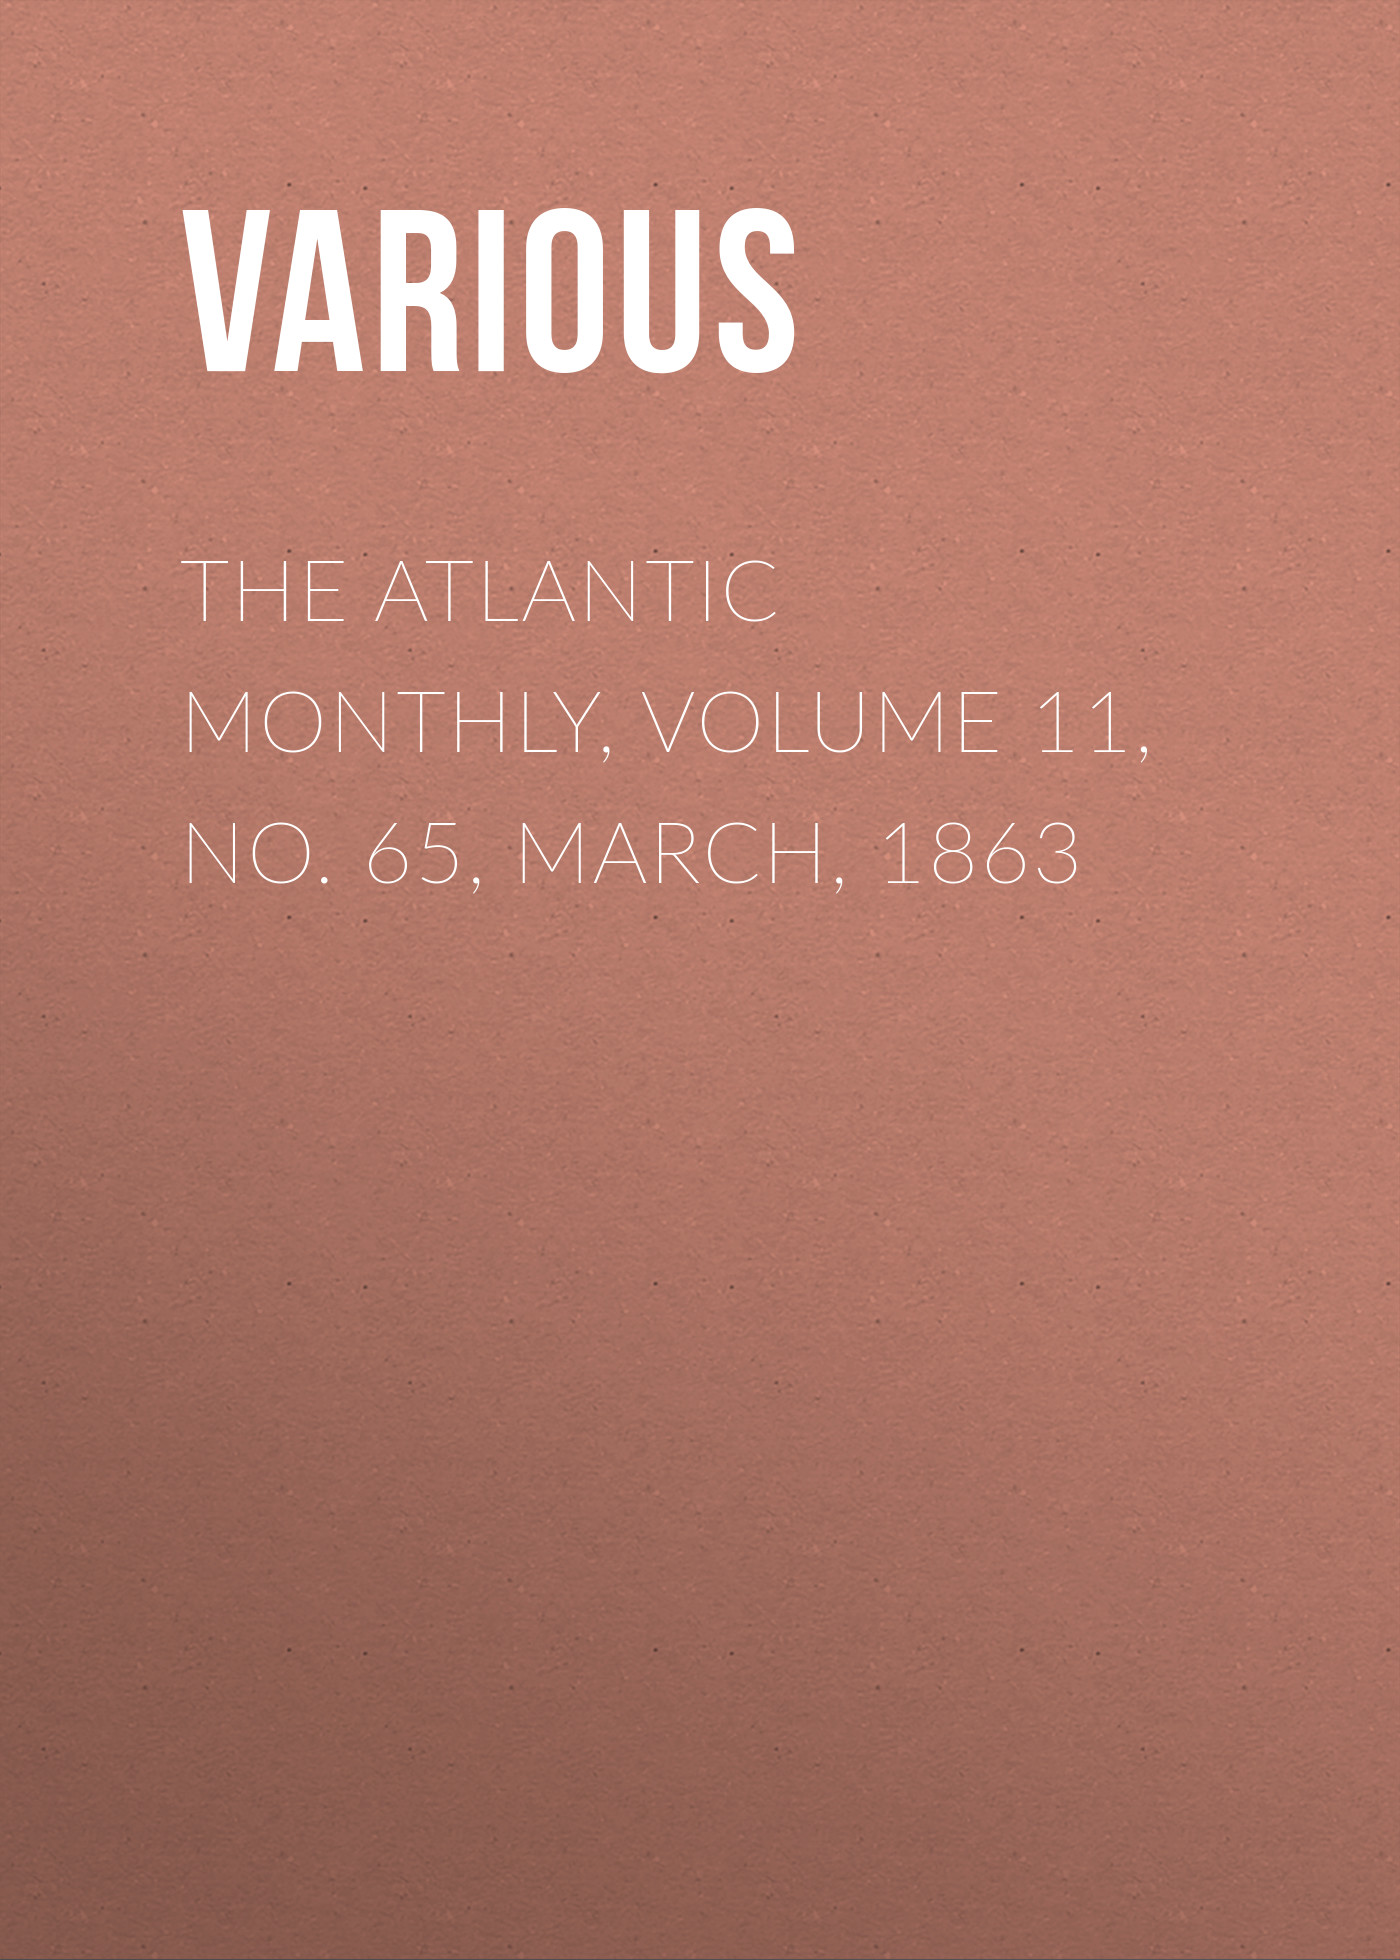 Various The Atlantic Monthly, Volume 11, No. 65, March, 1863 various the atlantic monthly volume 11 no 63 january 1863